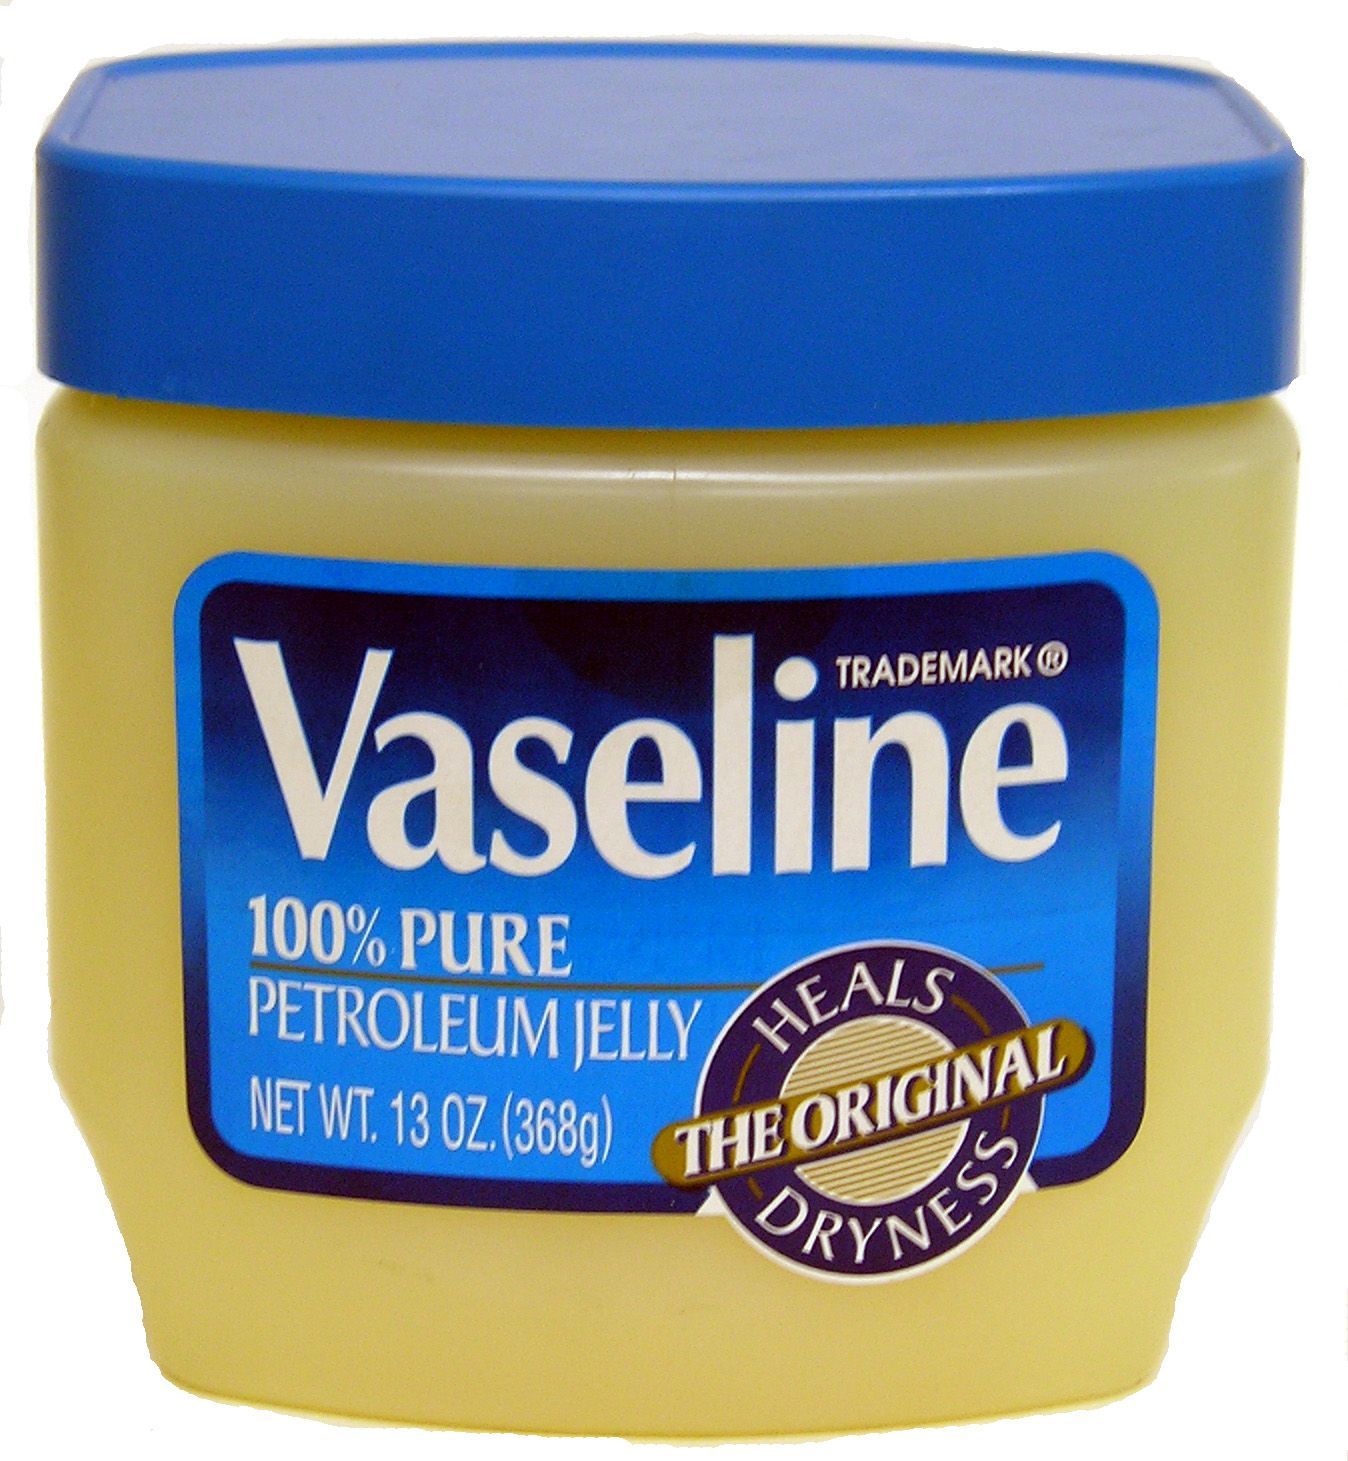 Vaseline. Seriously, the only thing that works in the Winter.